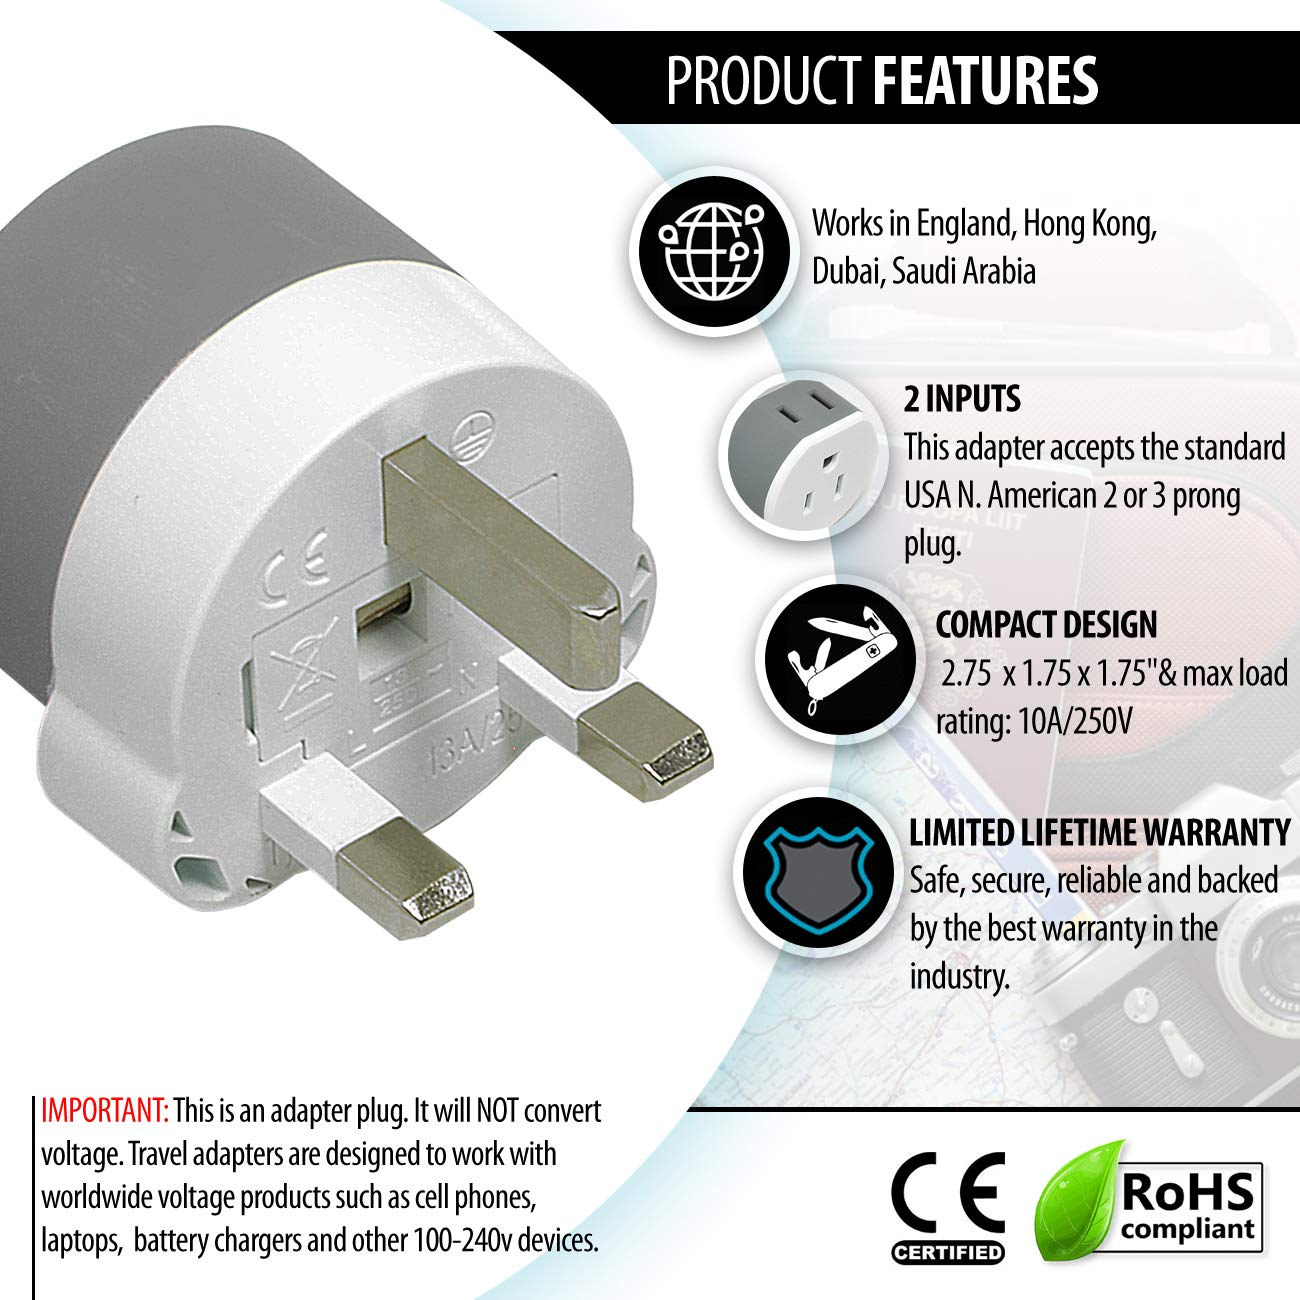 Amazon.com: OREI 3 in 1 UK Travel Adapter Plug with USB and Surge ...